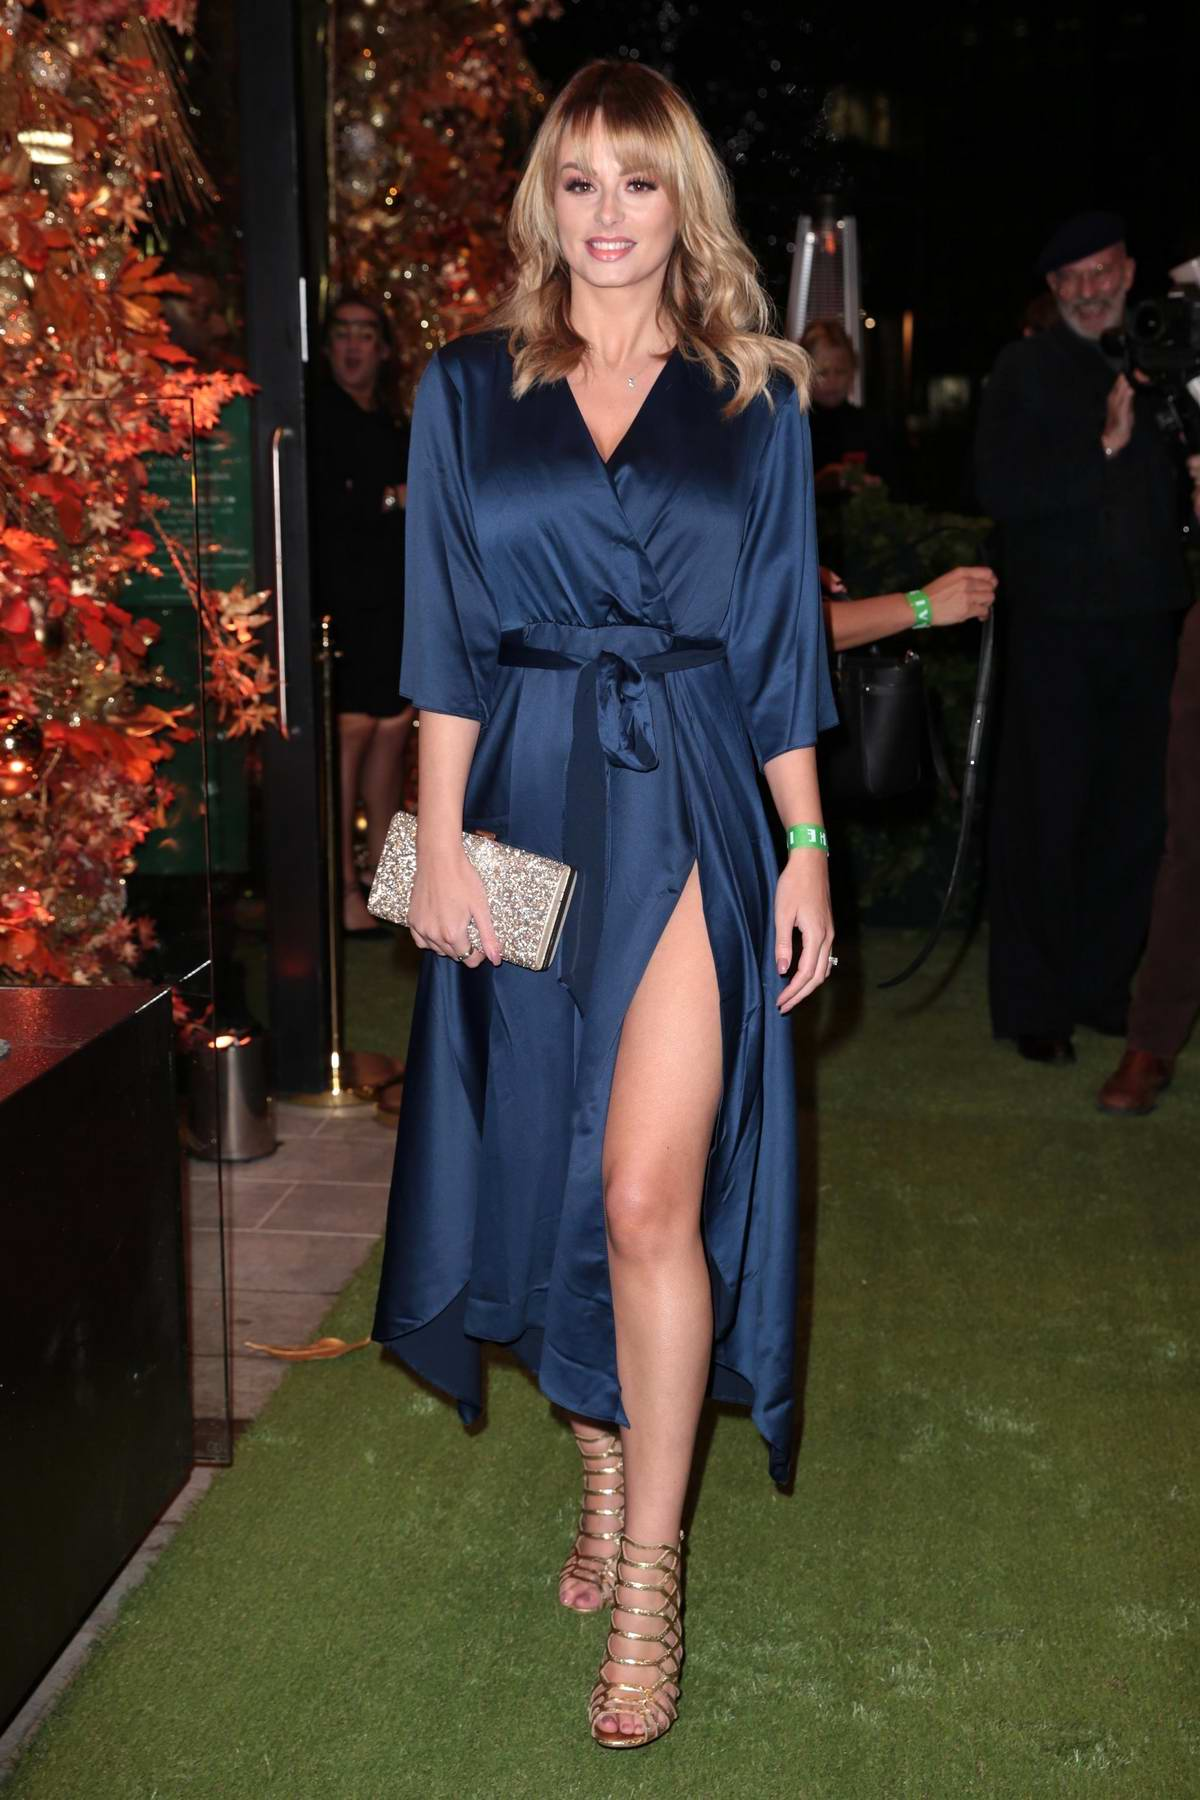 Rhian Sugden arrives at the Ivy restaurant launch in Manchester, UK